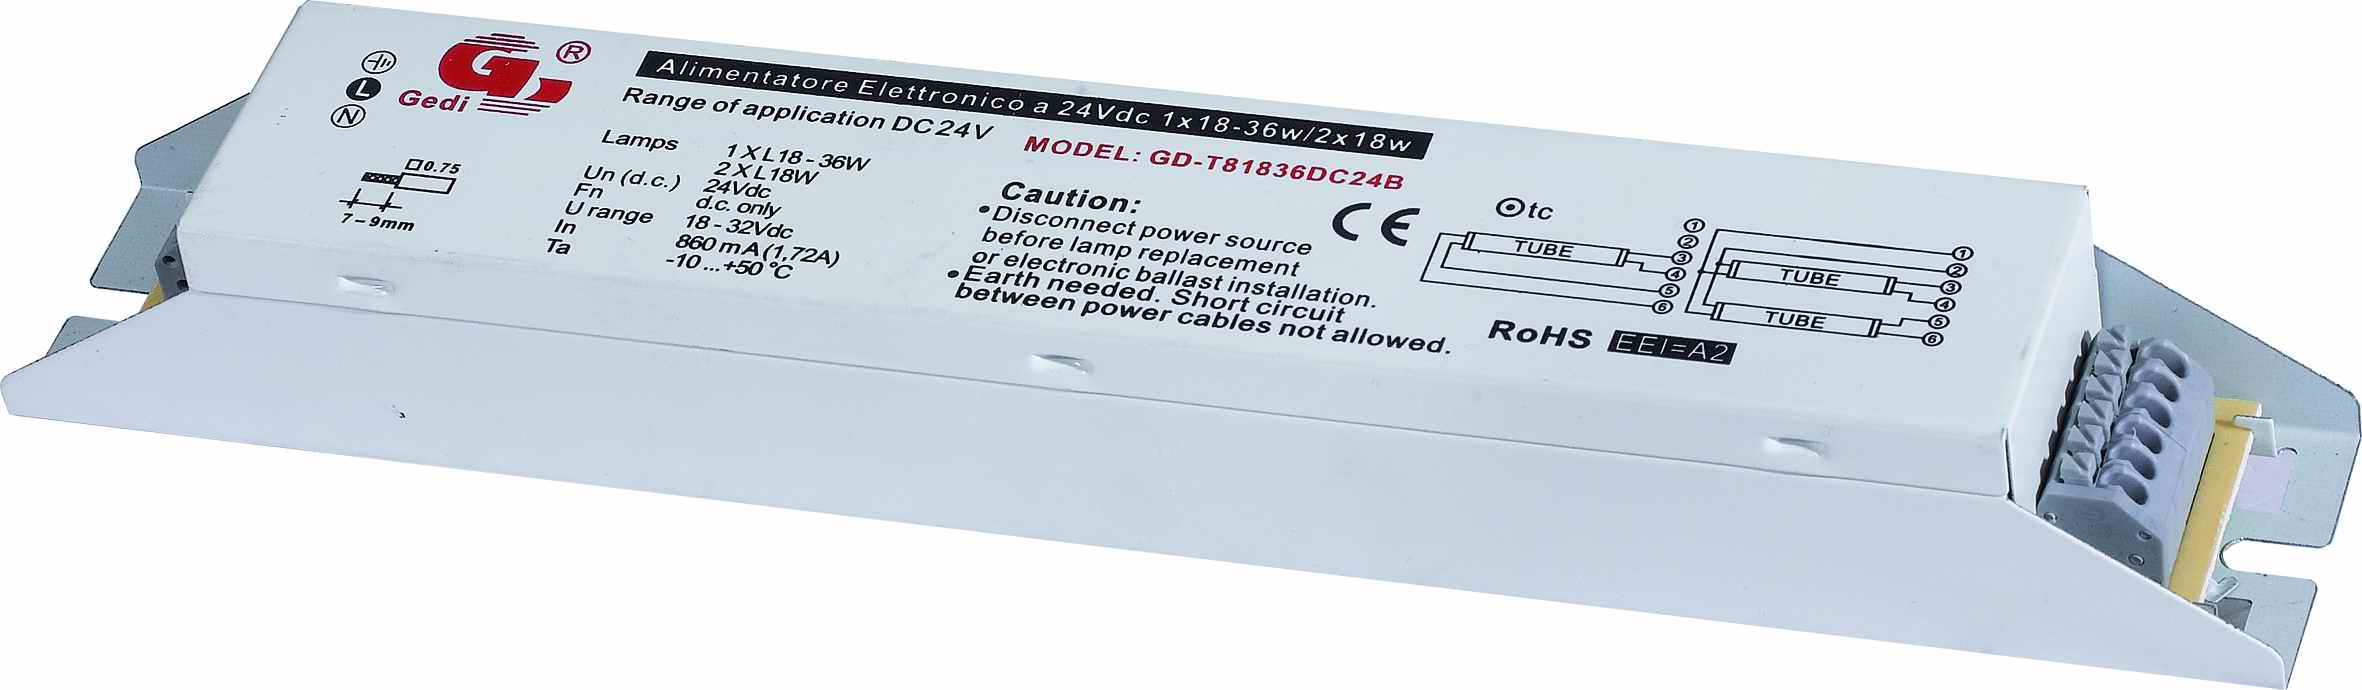 12/24V DC/AC Electronic Ballast For T8 Lamps